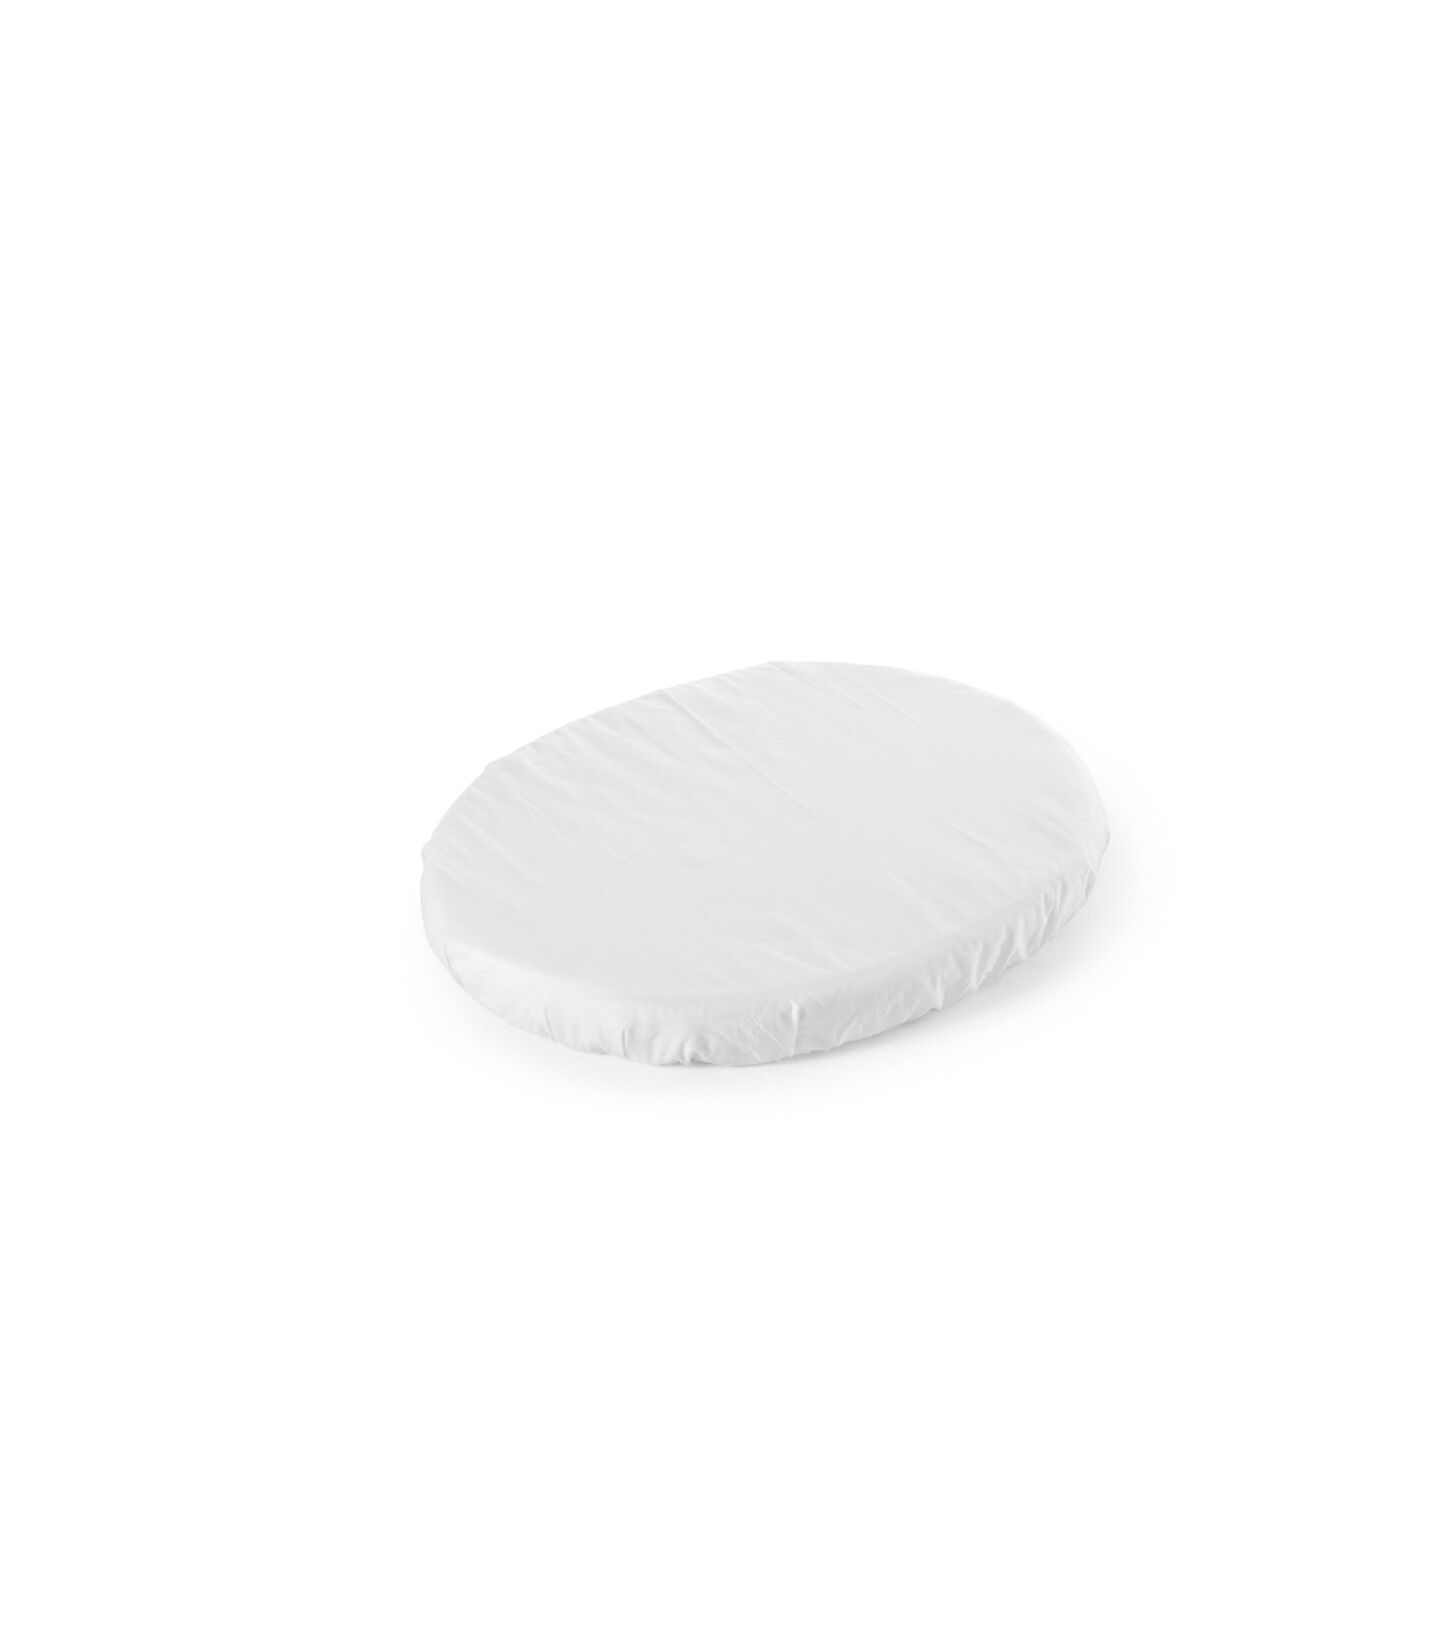 Stokke® Sleepi™ Mini Sáb. Bajera ajustable Blanco, Blanco, mainview view 2